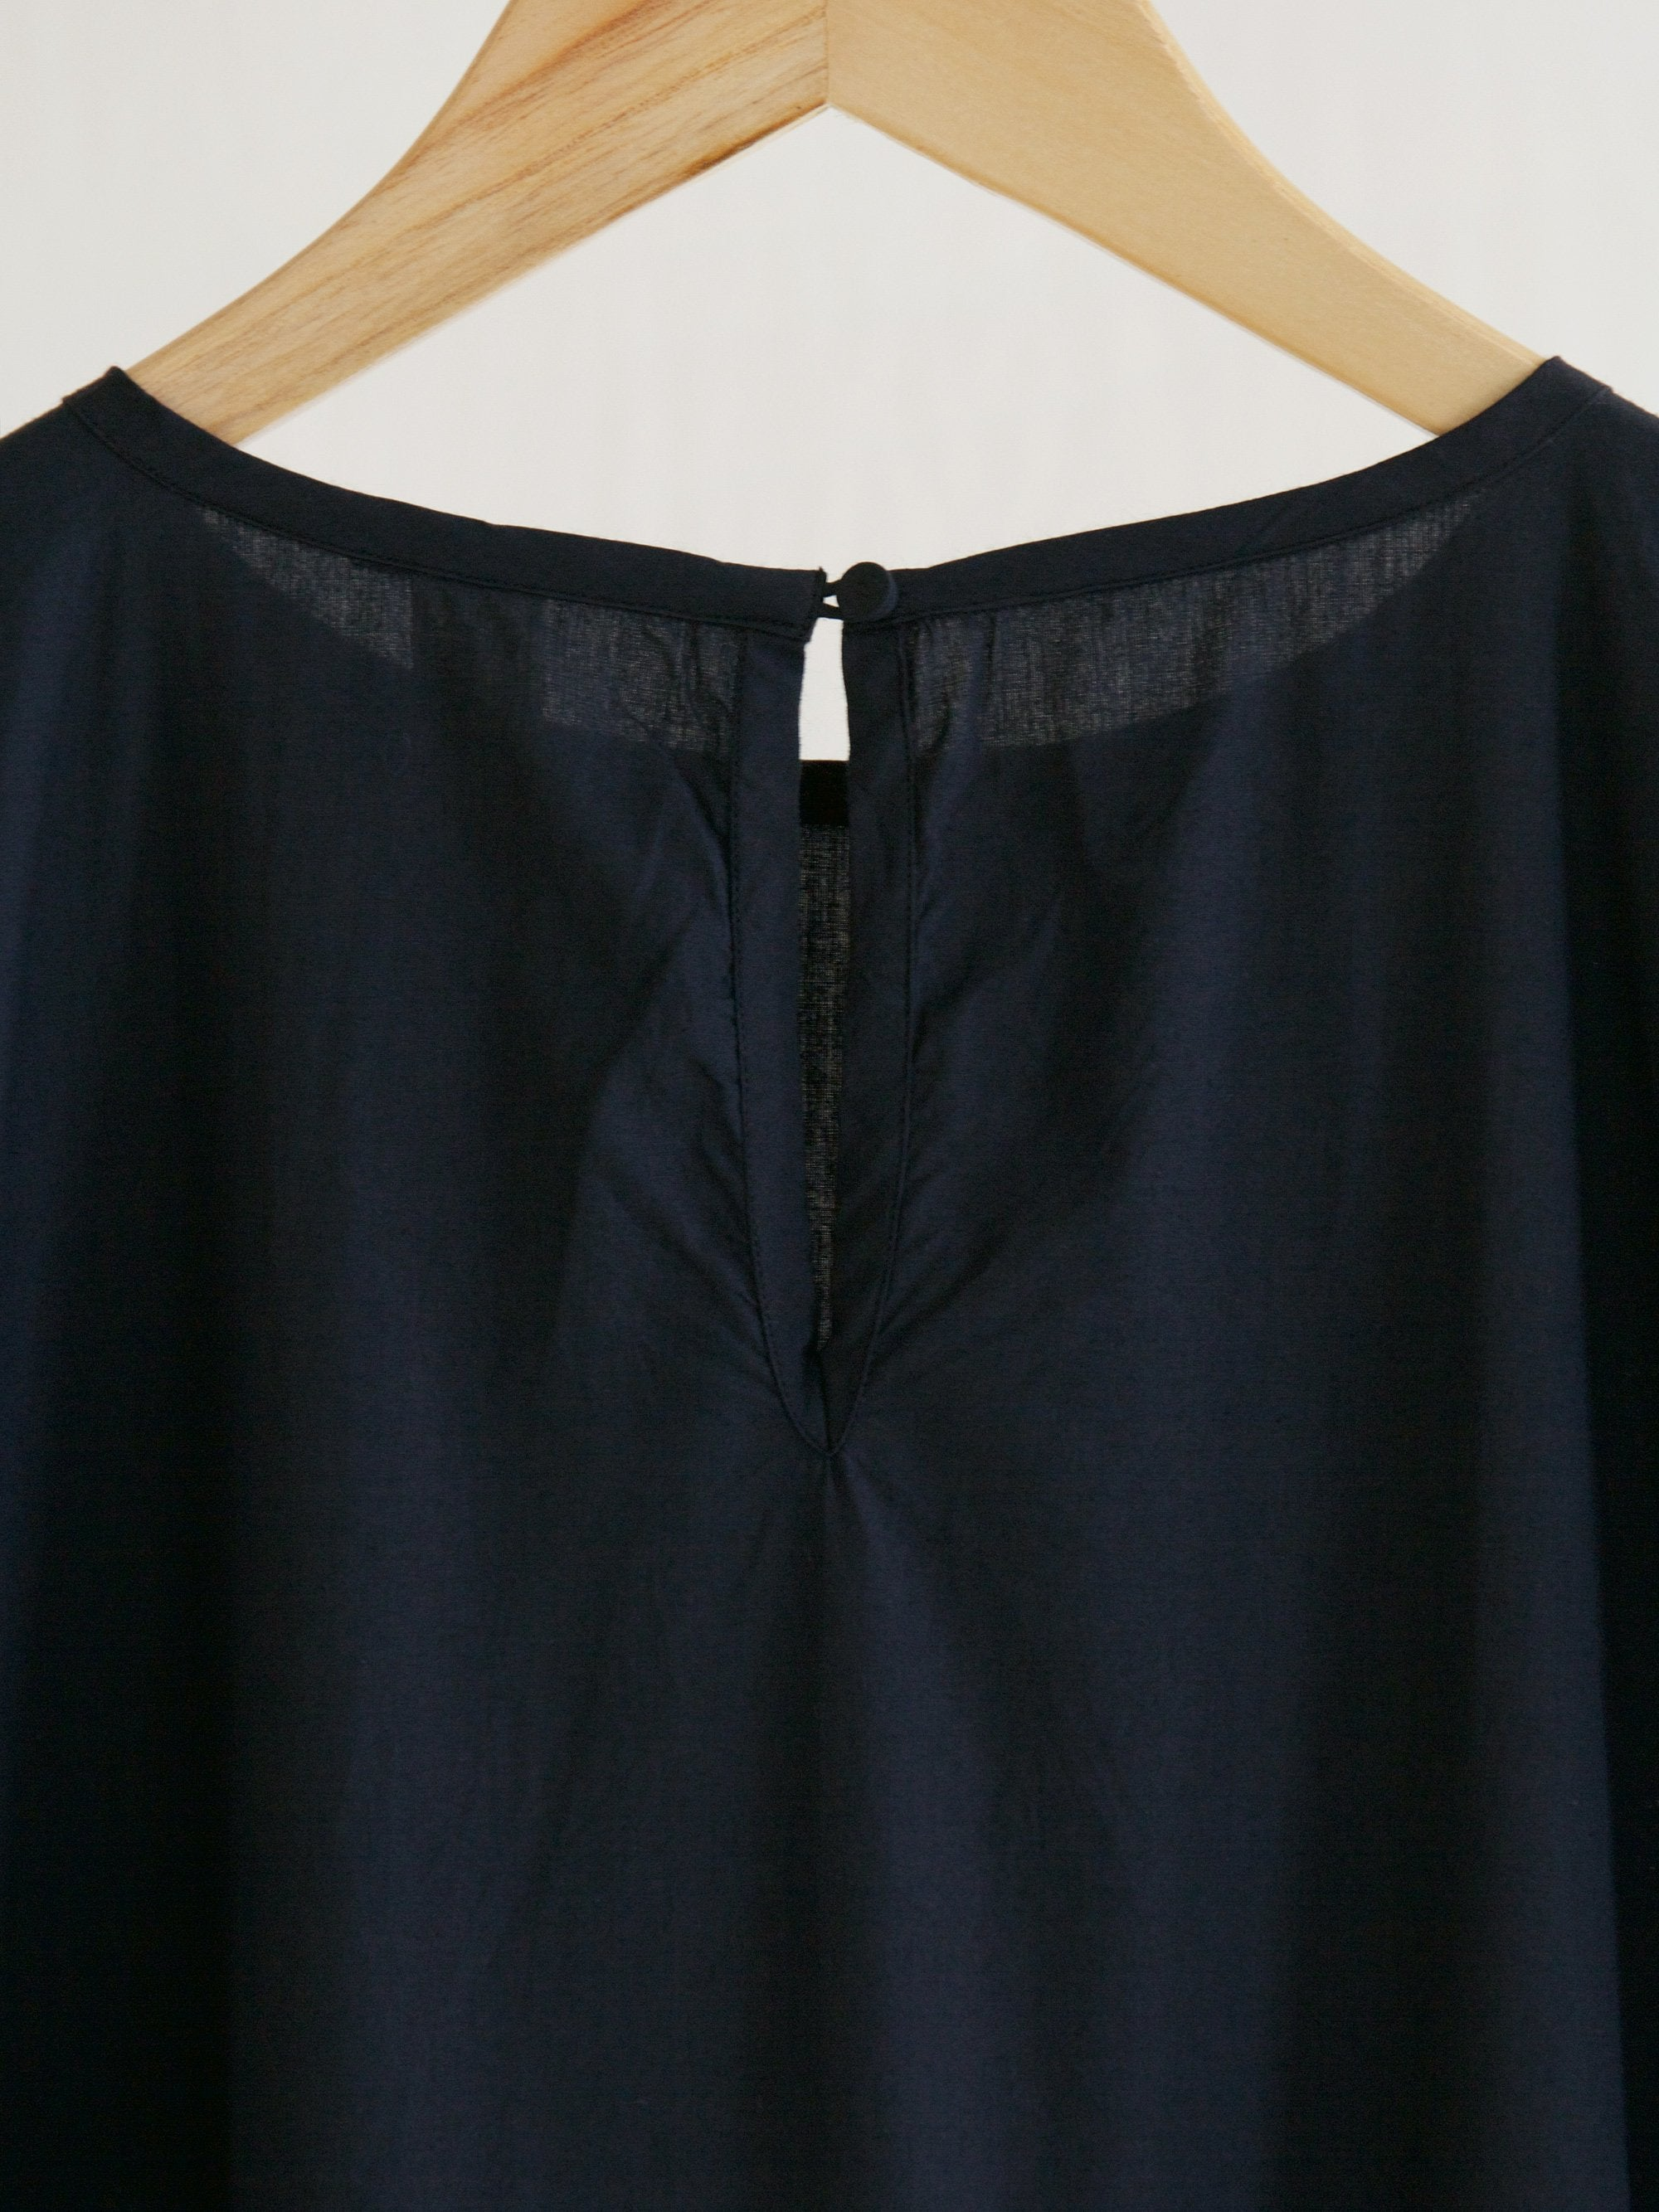 Namu Shop - Veritecoeur Pleated Dress - Dark Navy